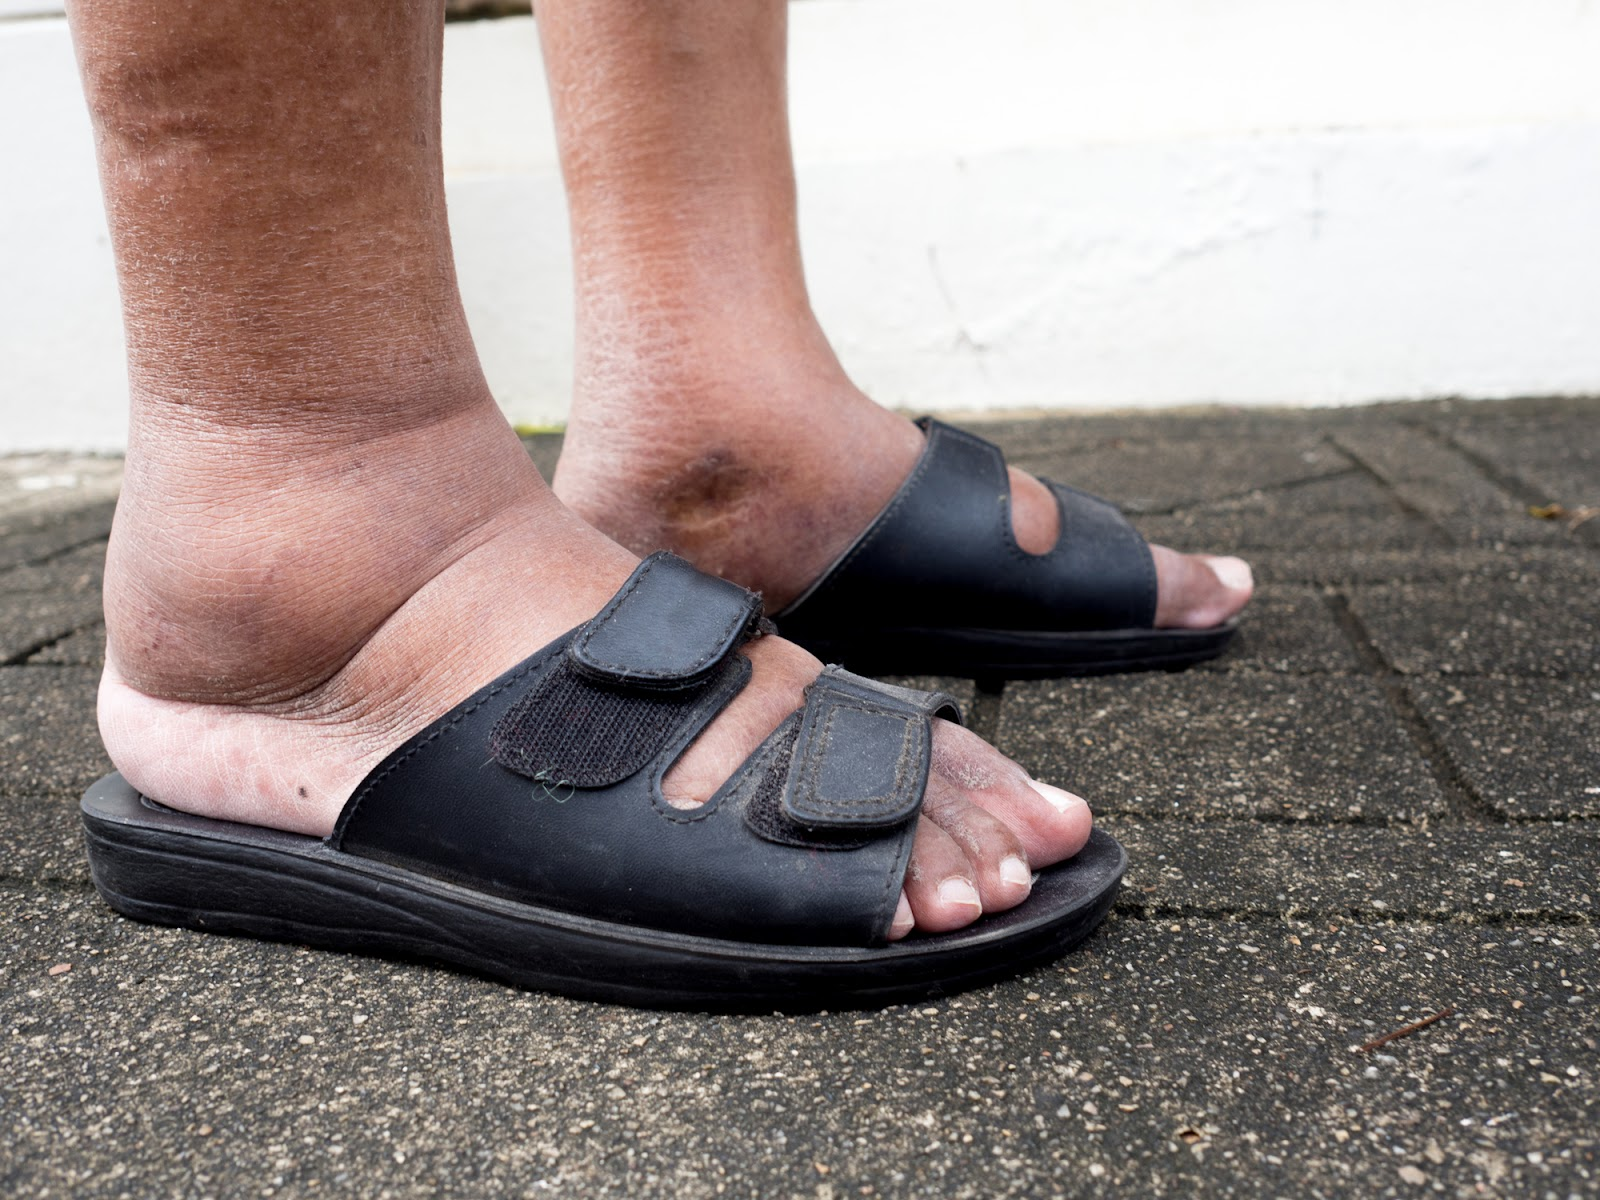 Shoes for swollen feet